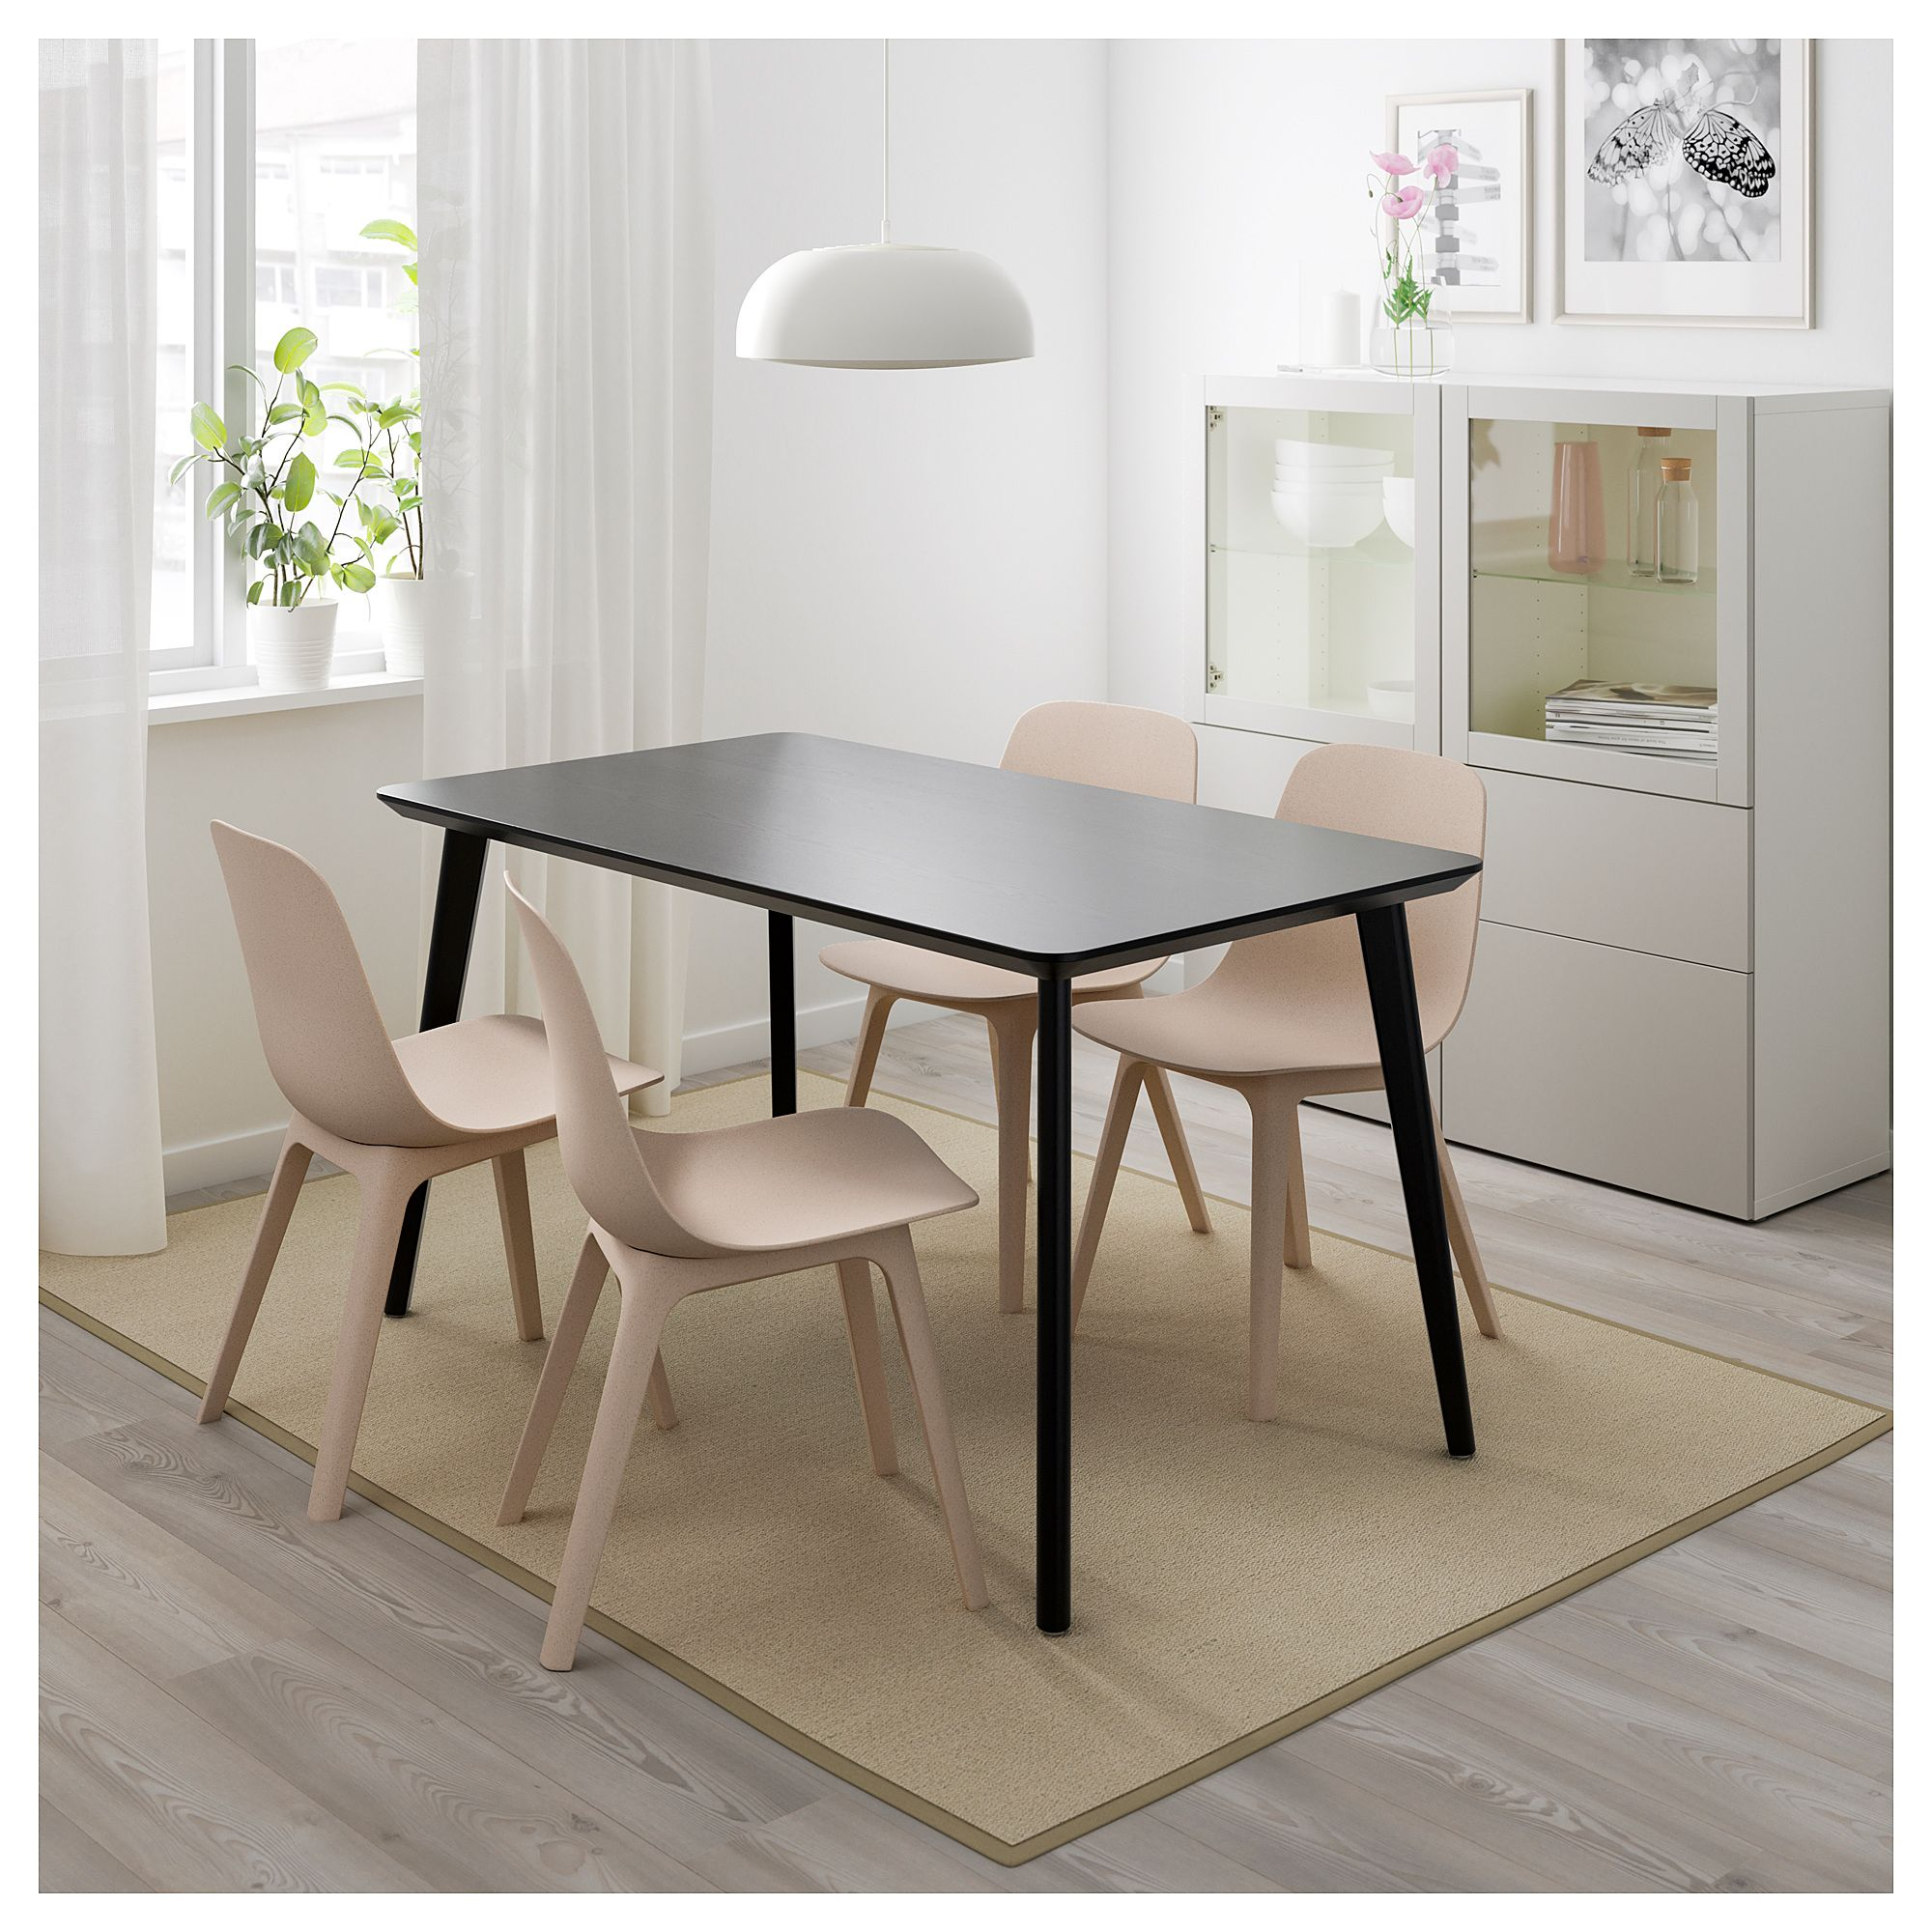 IKEA LISABO / ODGER Table and 4 chairs black, beige